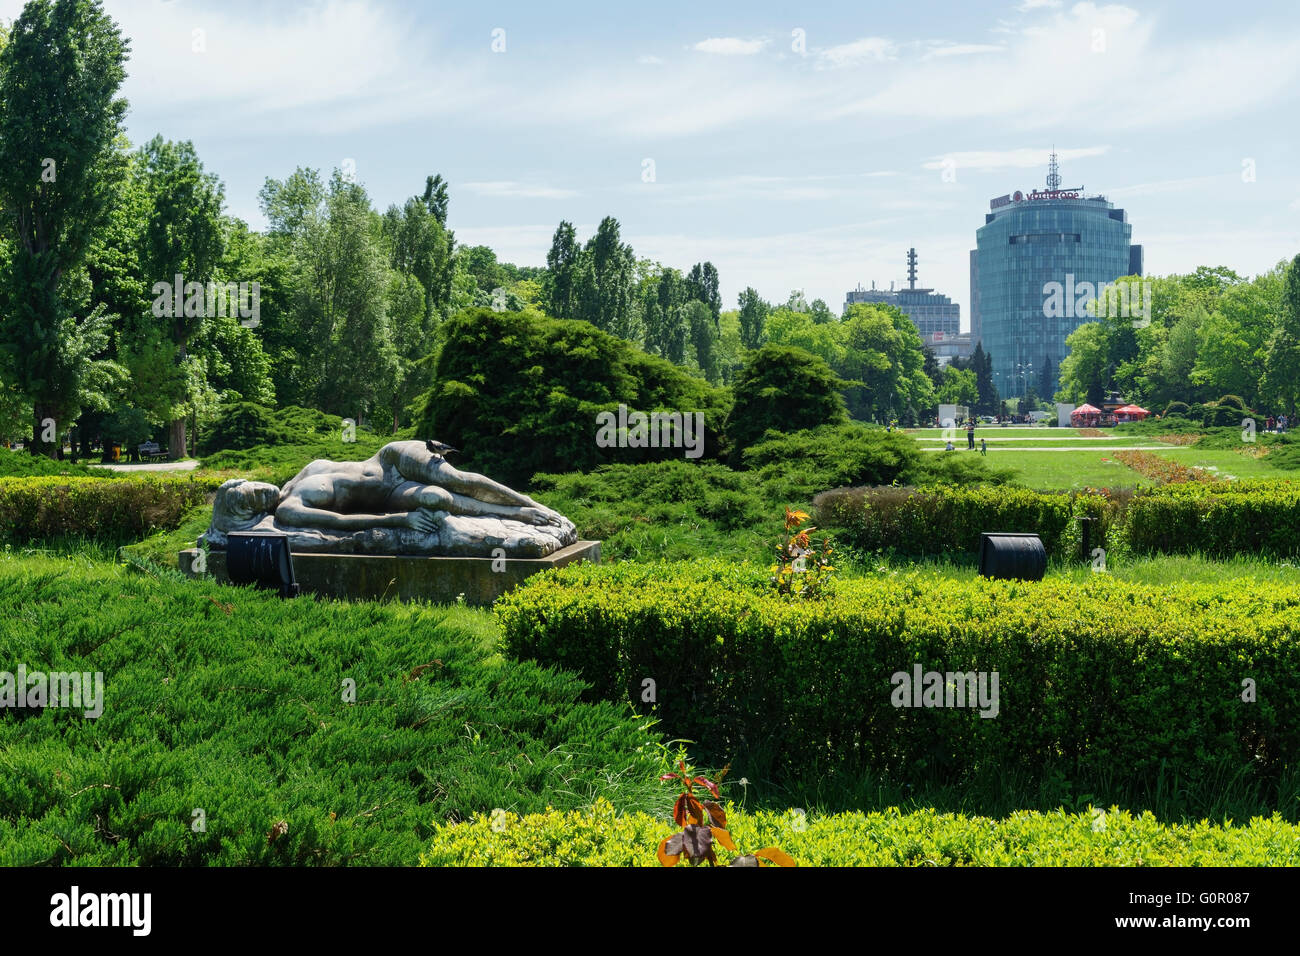 Flower garden at at Herastrau Park, Bucharest, Romania. - Stock Image